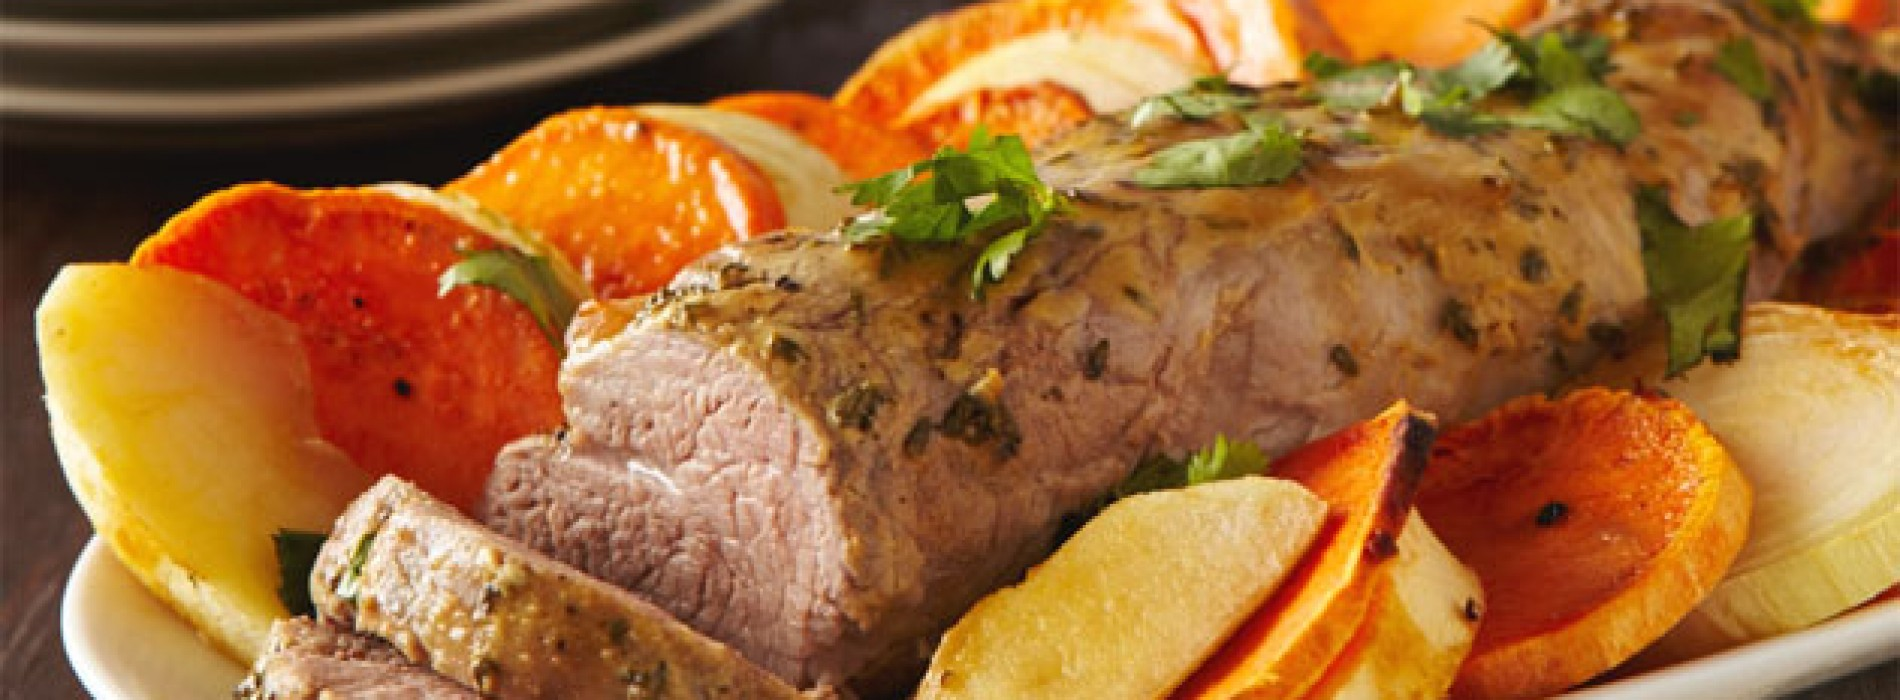 Baked Pork Loin With Sweet Potatoes Recipe — Dishmaps